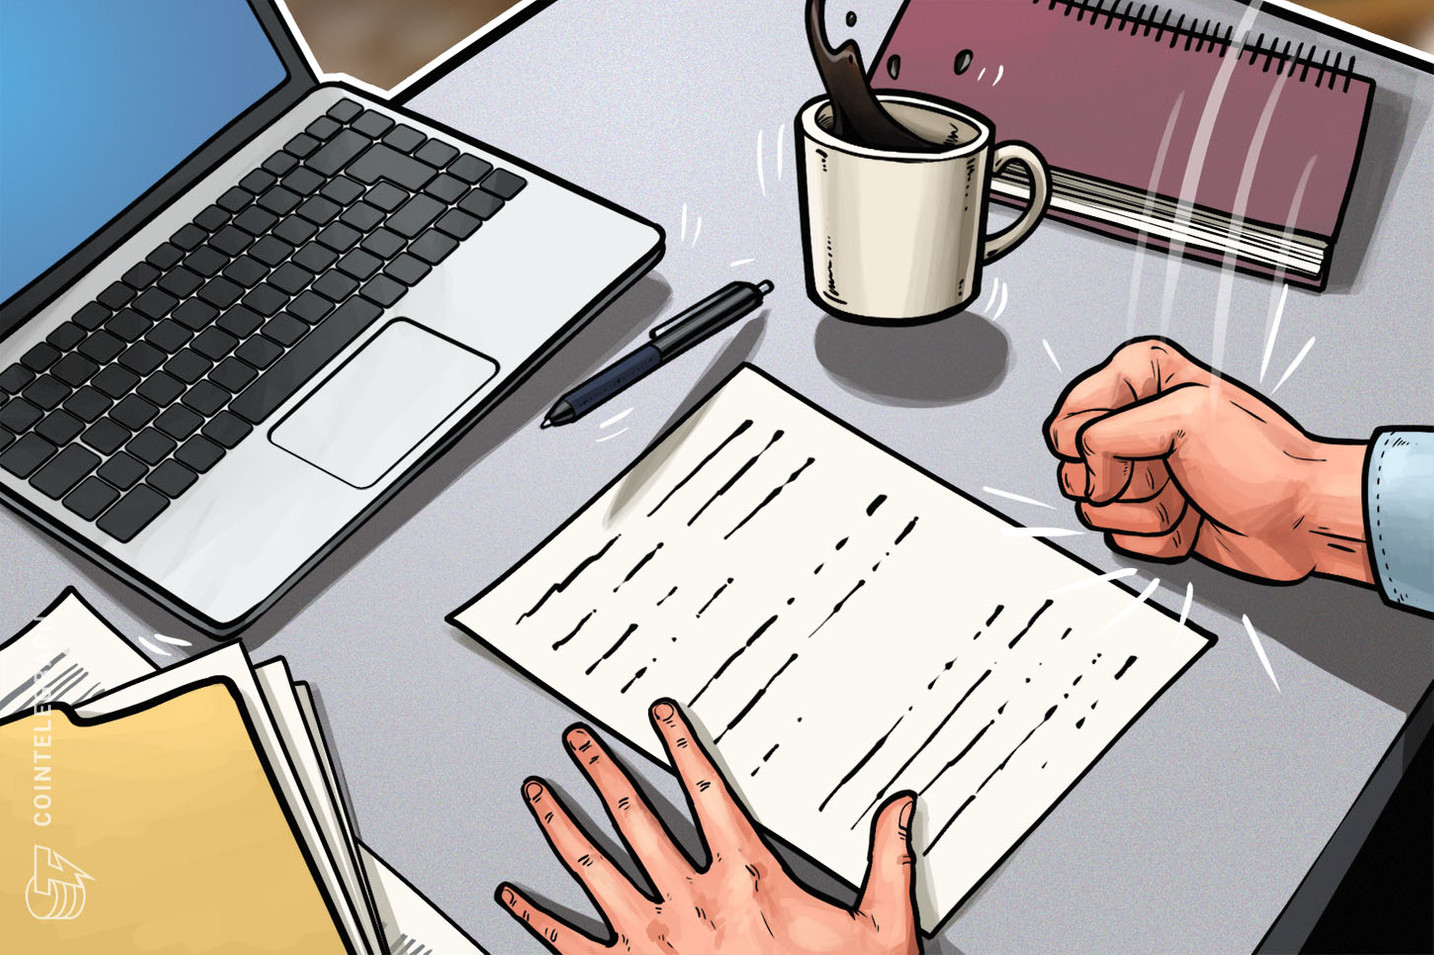 US Regulator Rejects FOIA Request Concerning Bitfinex, Tether Subpoenas